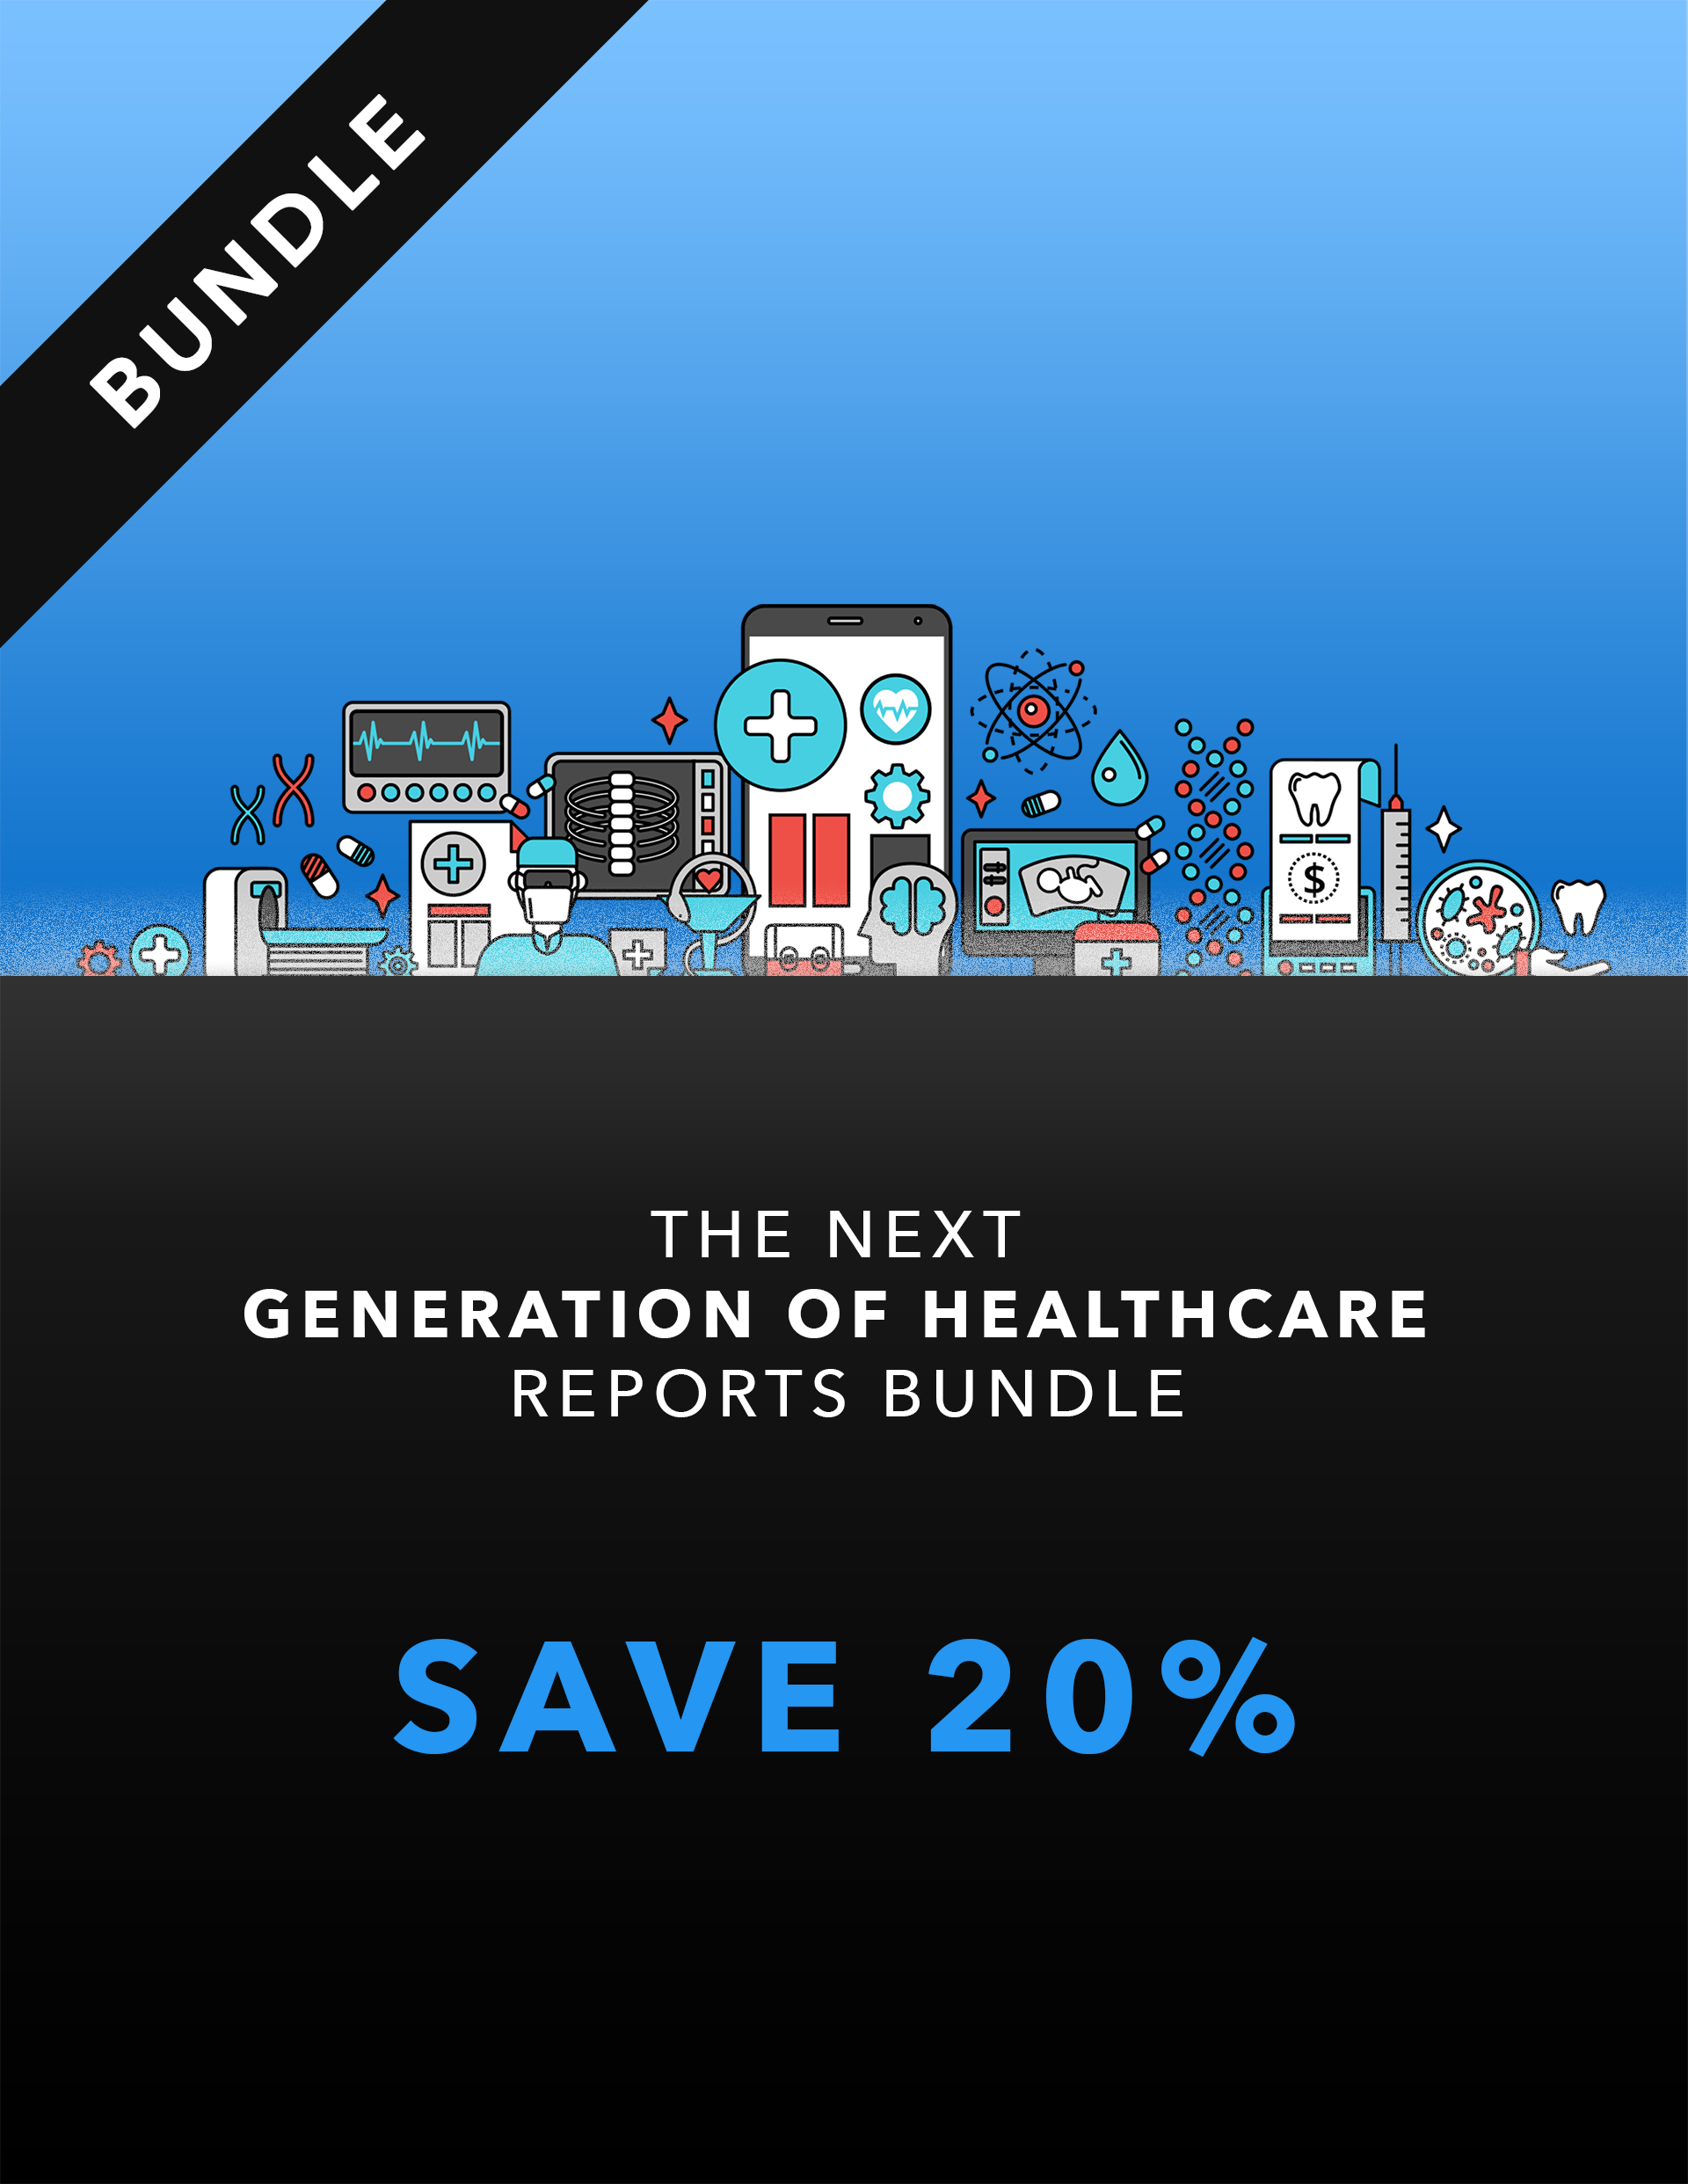 The Next Generation of Healthcare Reports Bundle